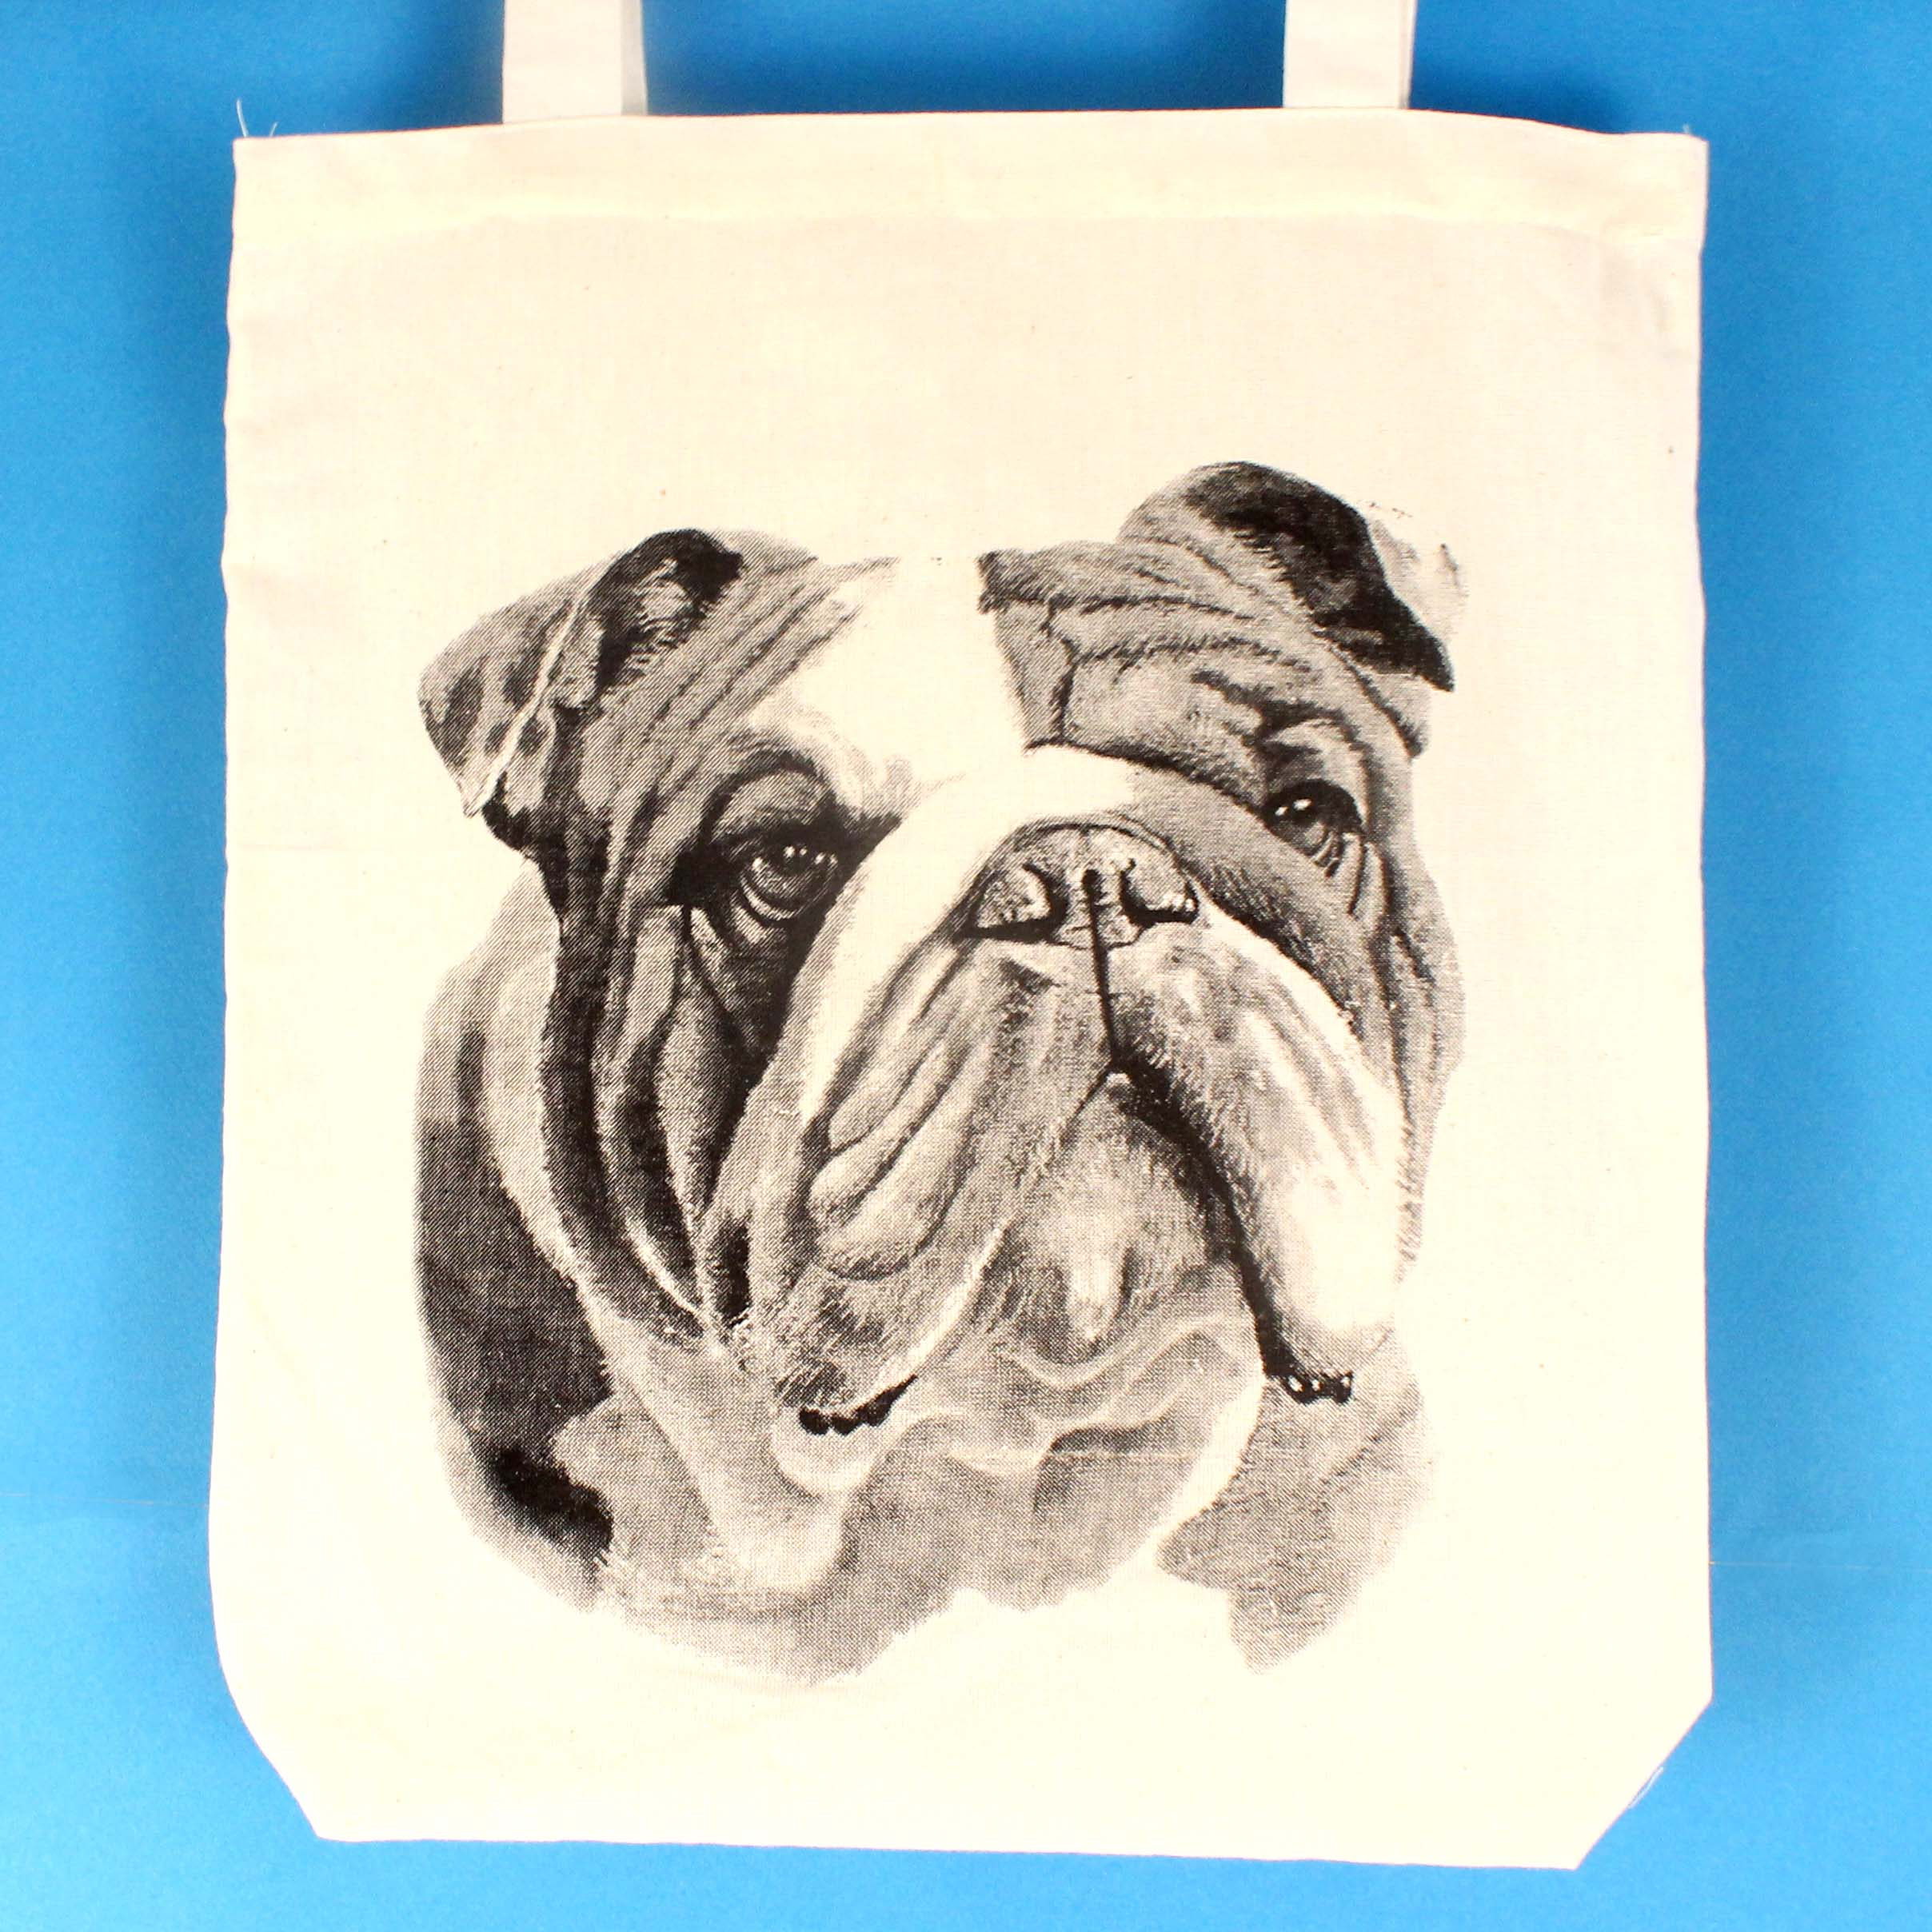 bulldog-puppy-dog-animal-print-tote-bag-100-natural-cotton